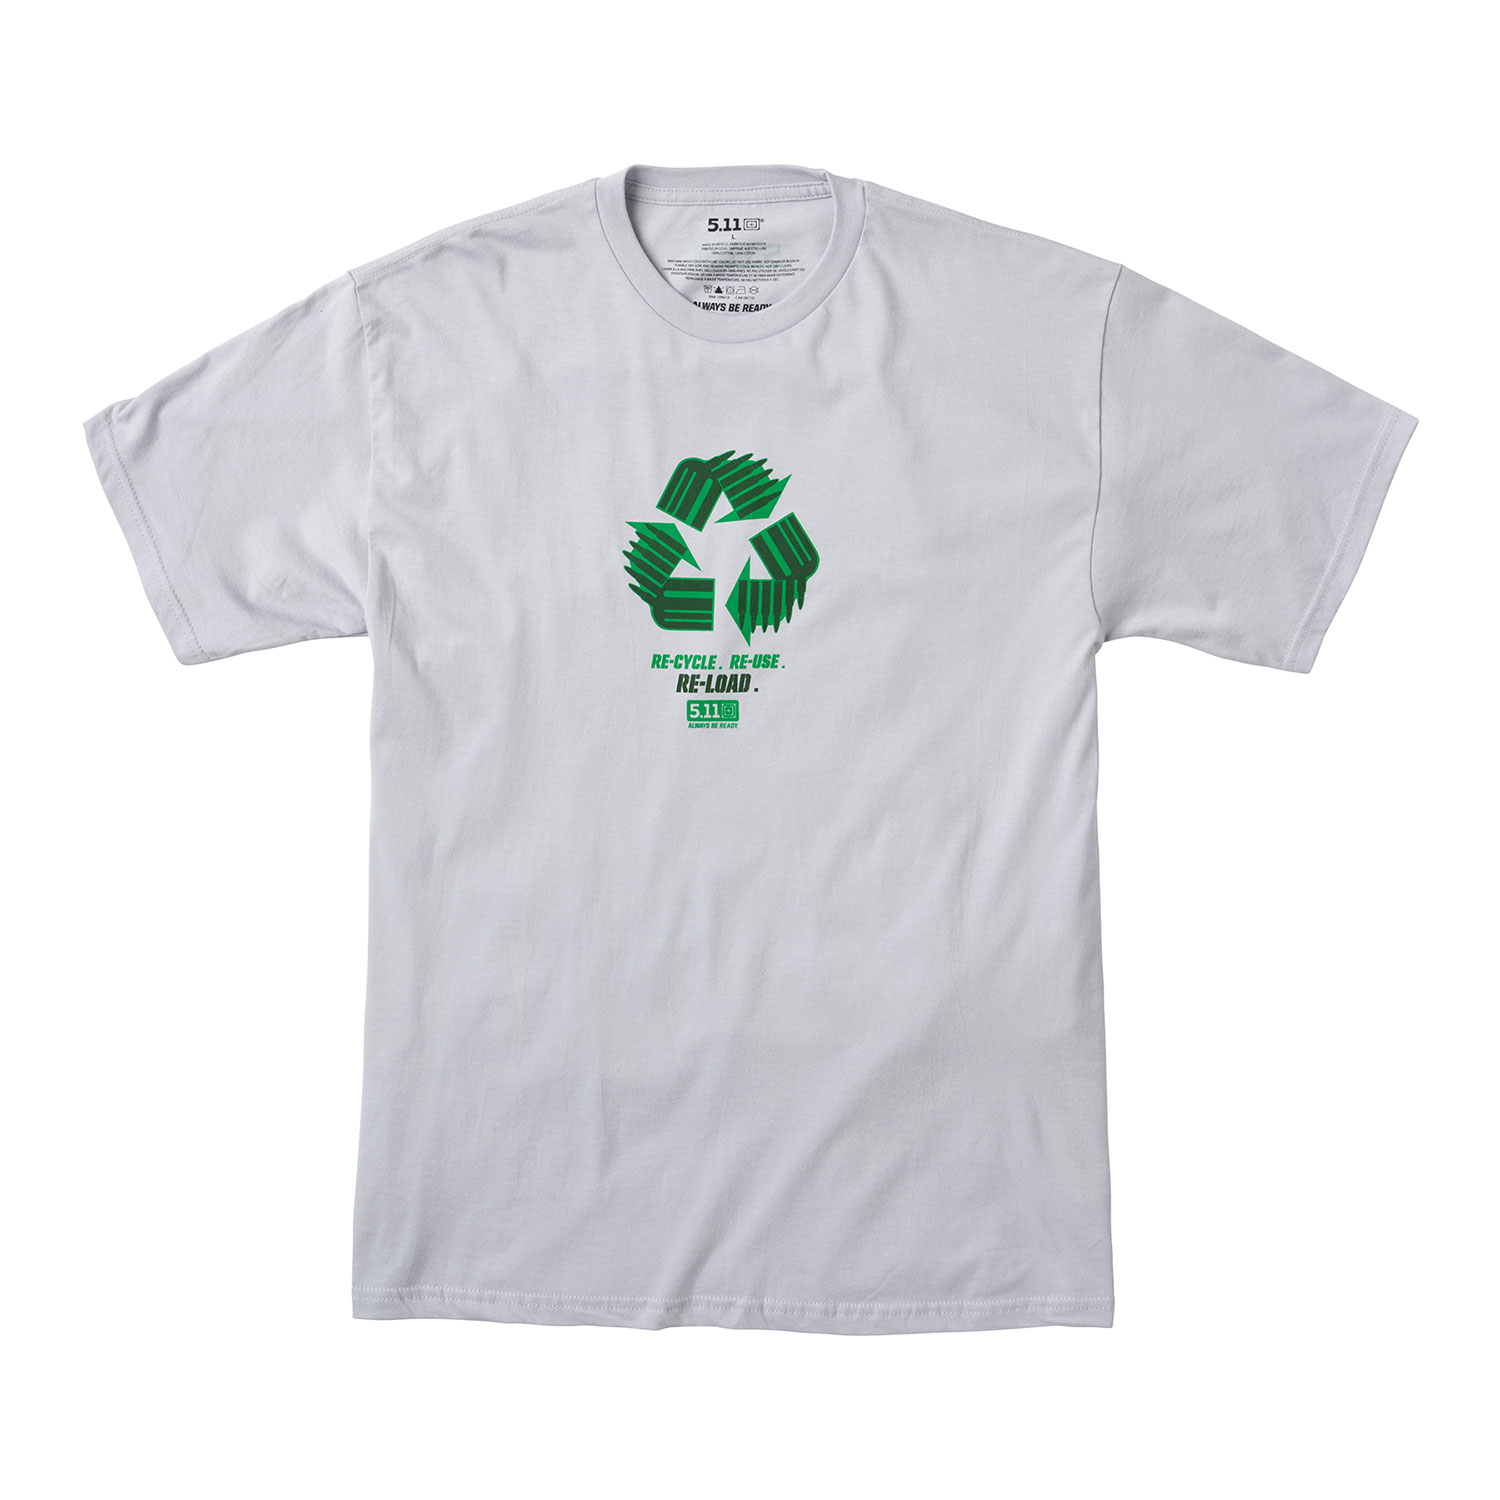 5.11 Tactical Men's Recycle Short Sleeve Tee